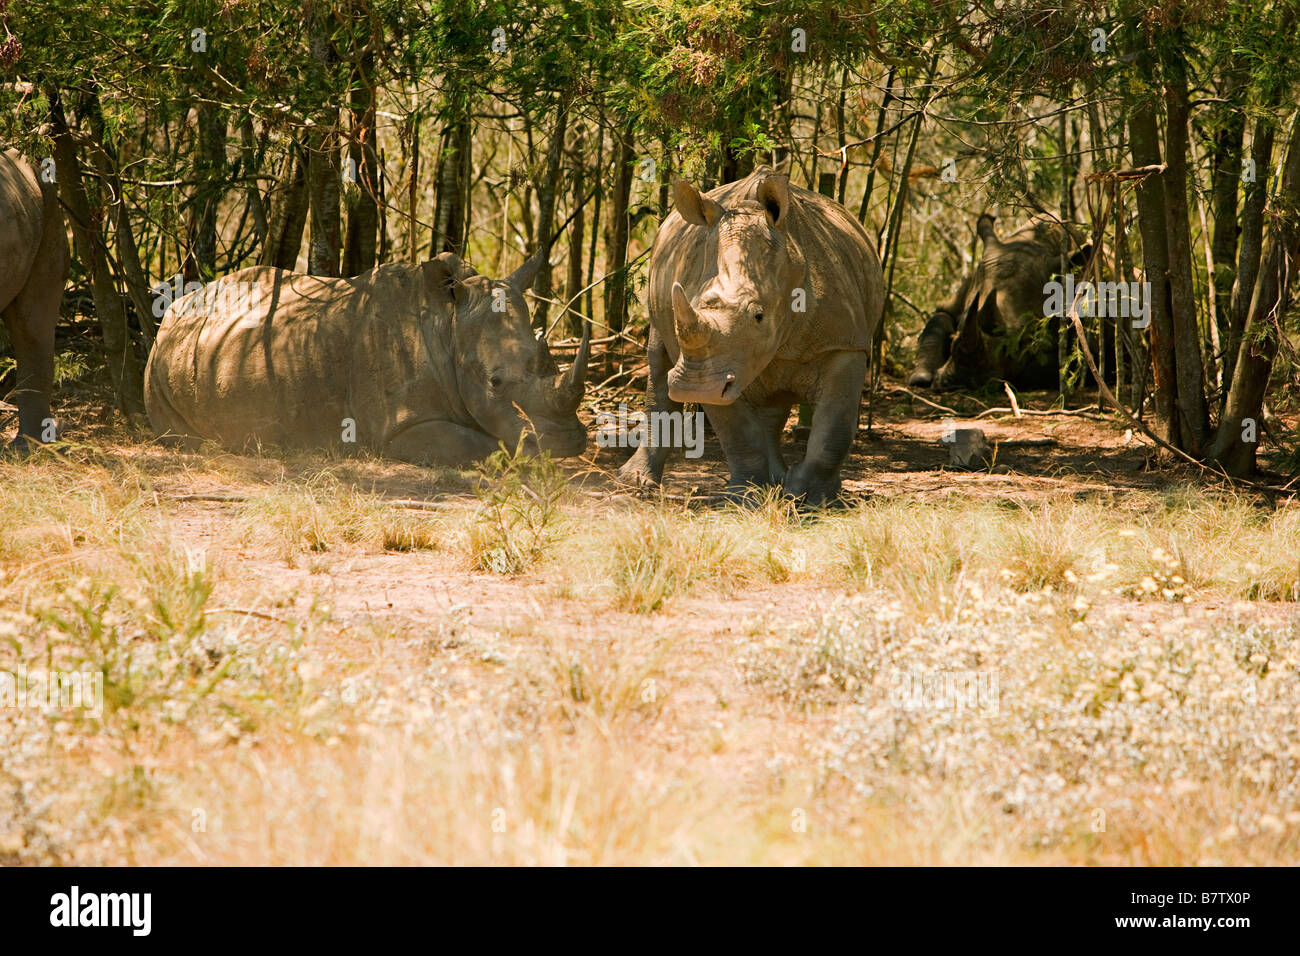 White Rhino getting ready to charge - Stock Image